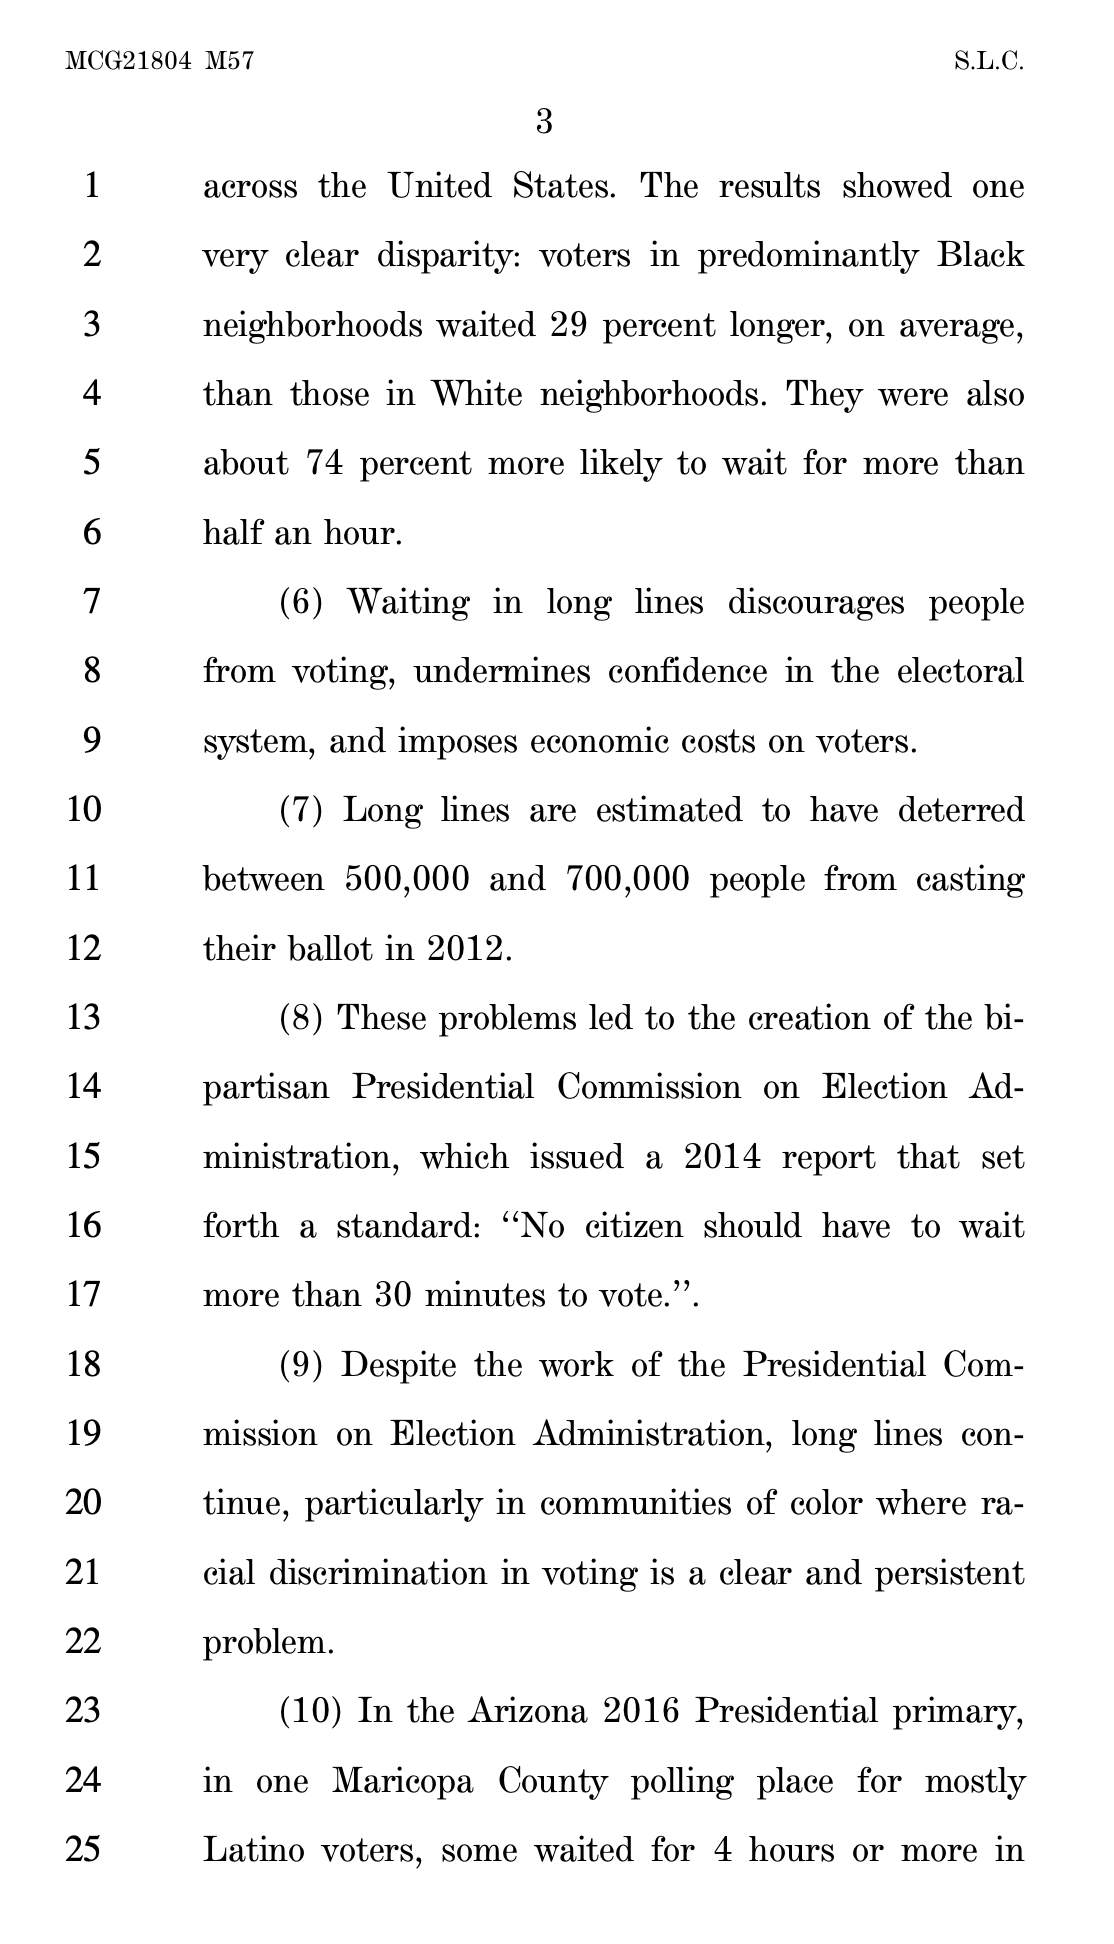 Screen-Shot-2021-06-17-at-4.02.35-PM Democrats Introduces Law To Guarantee Vote Within 30 Minutes Corruption Crime Featured Politics Top Stories